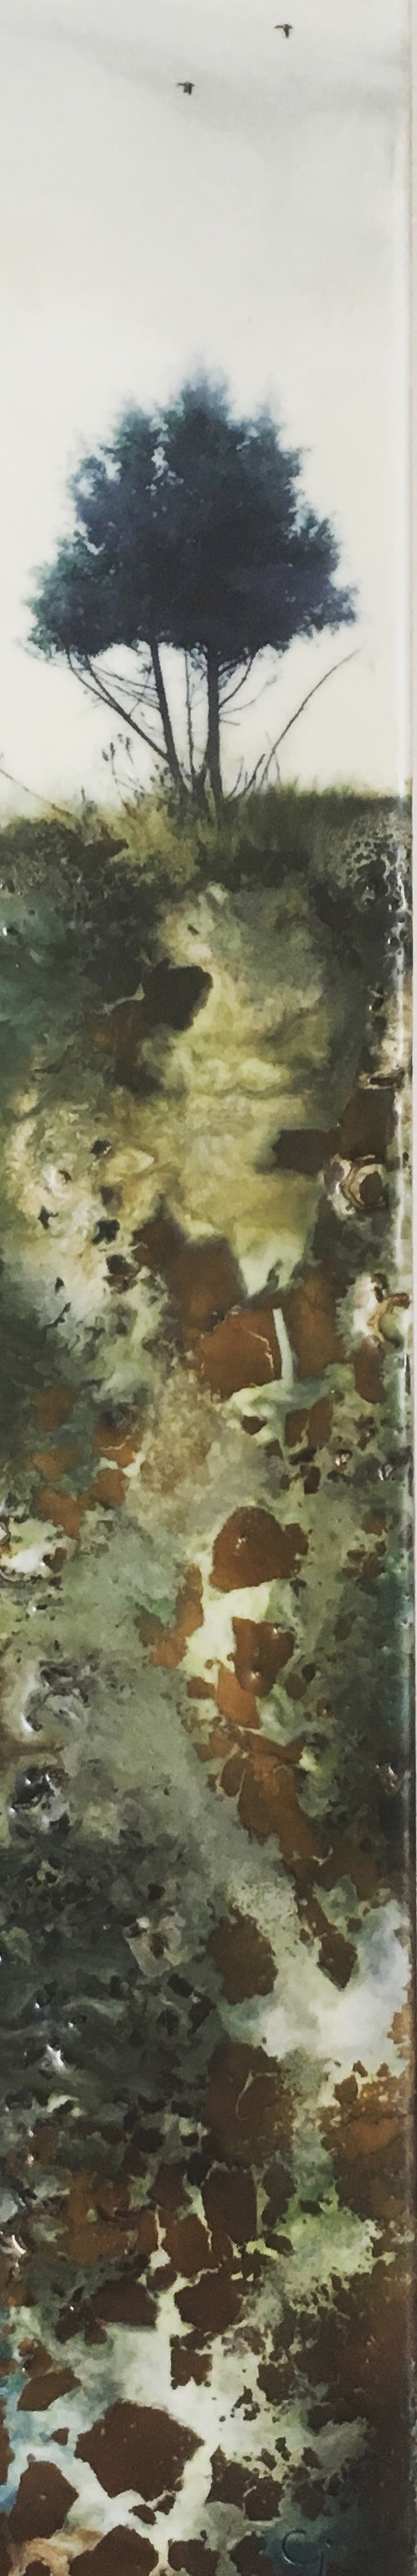 """Deeply Rooted""   3x18"" unframed  encaustic mixed media on cradle board  SOLD  2019"